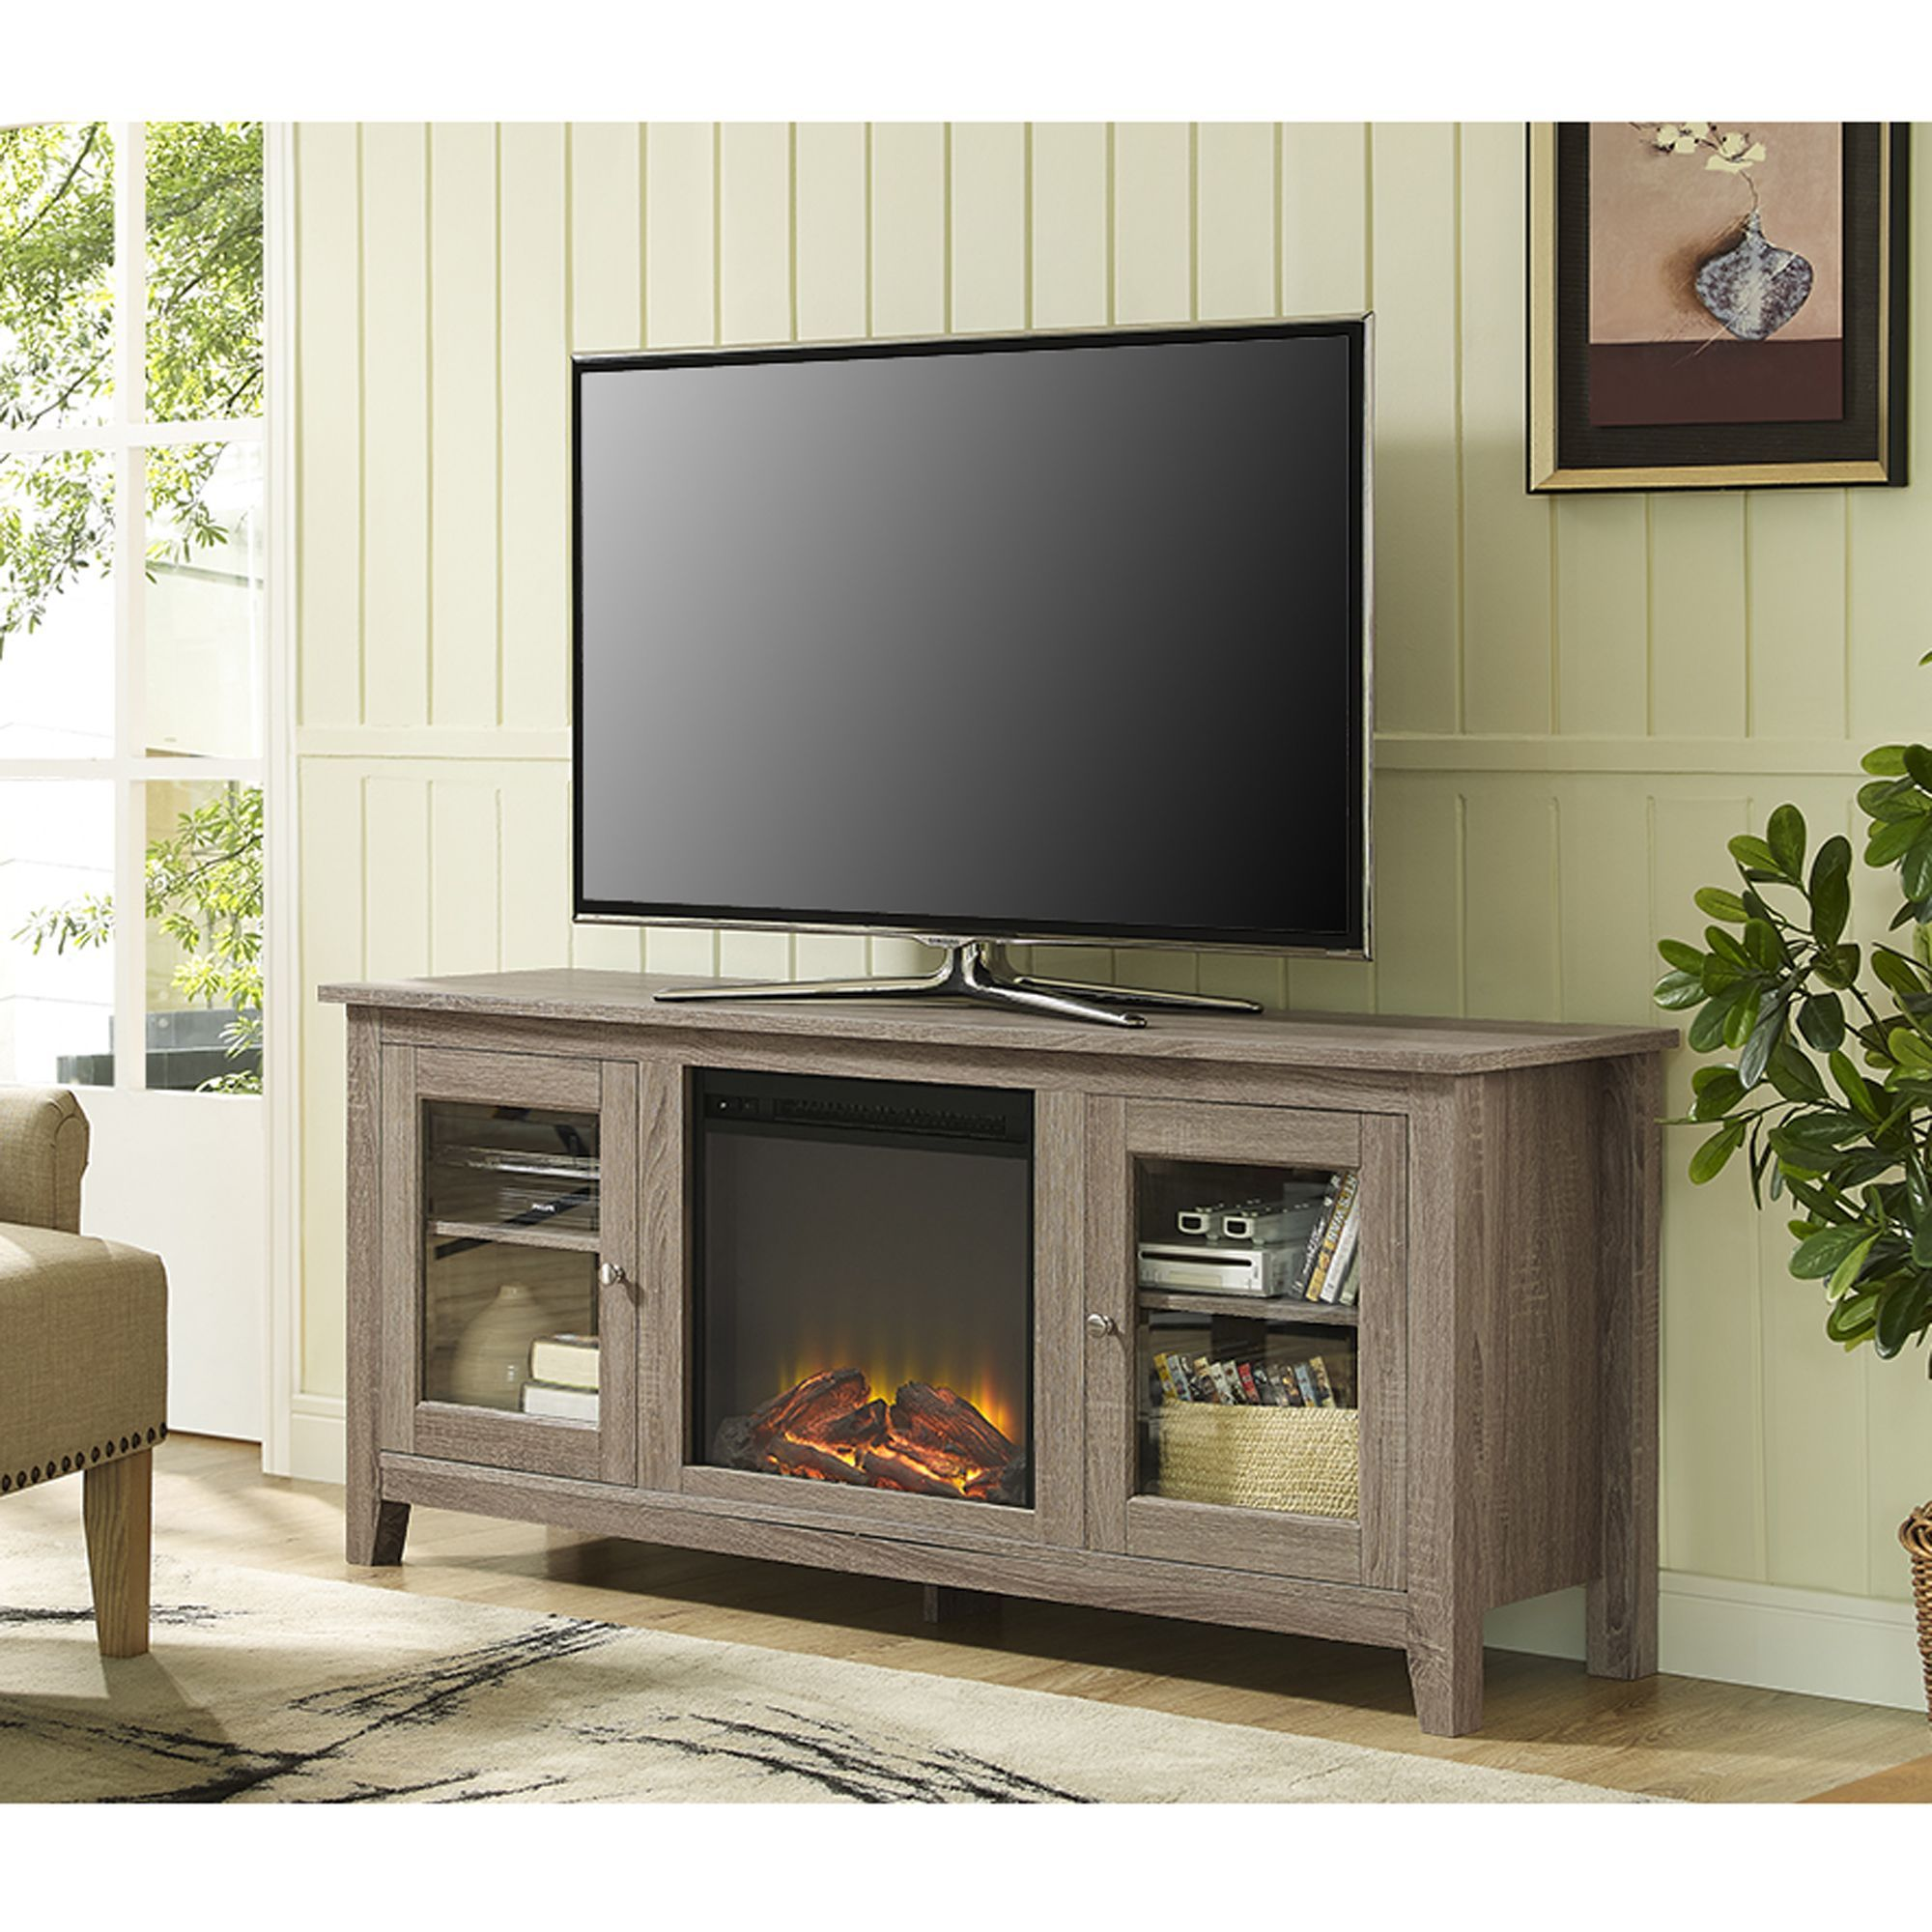 Inch driftwood fireplace tv stand with doors fireplace stand